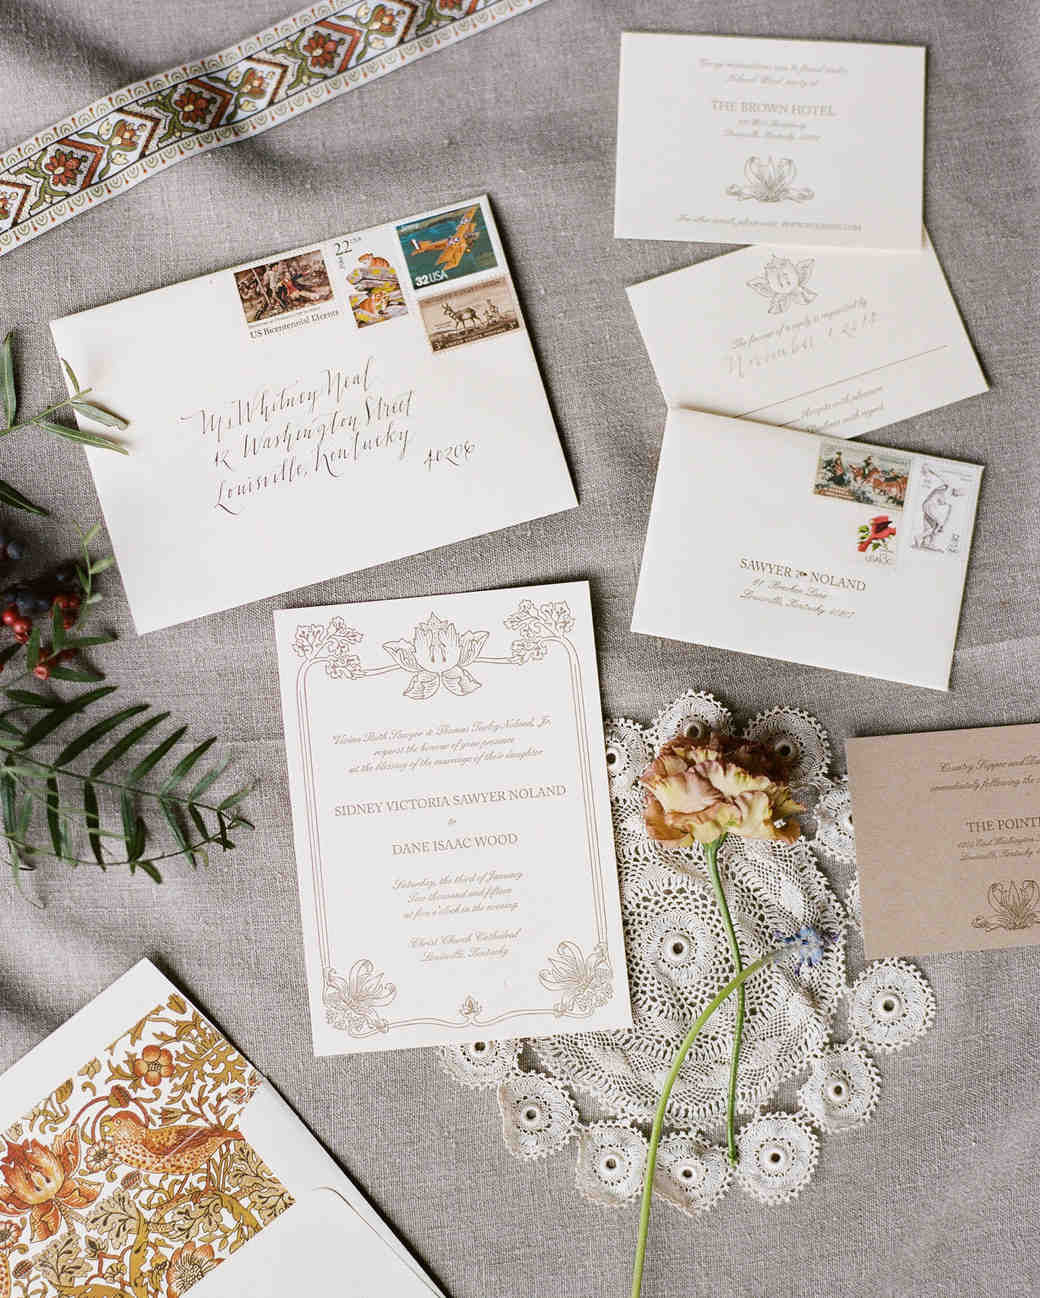 addressing and mailing your wedding invitations handwritten wedding invitations 10 Things You Should Know Before Mailing Your Wedding Invitations Martha Stewart Weddings